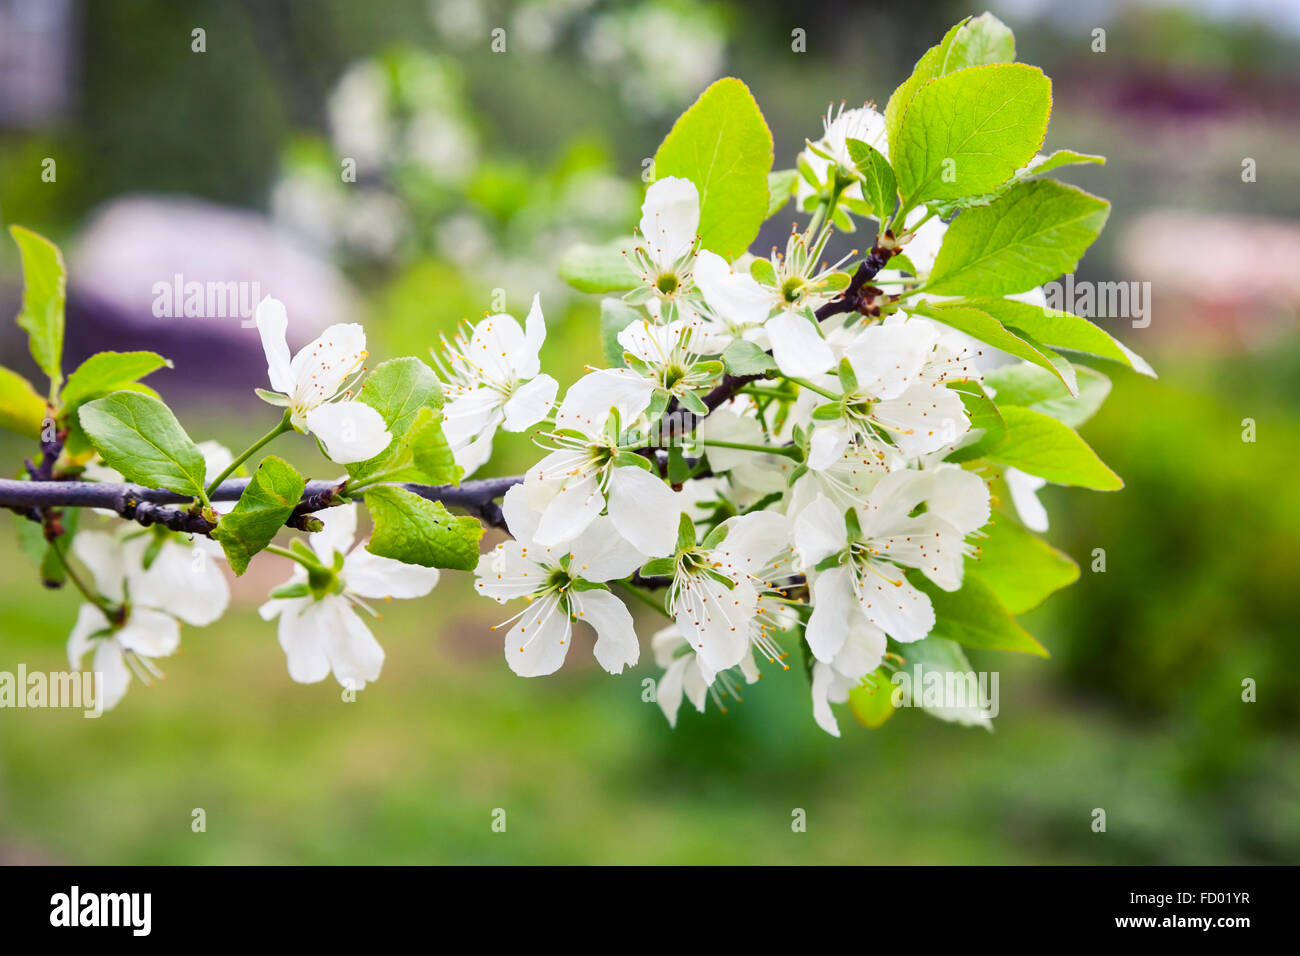 Apple Tree Branch With White Flowers In Spring Garden Closeup Photo